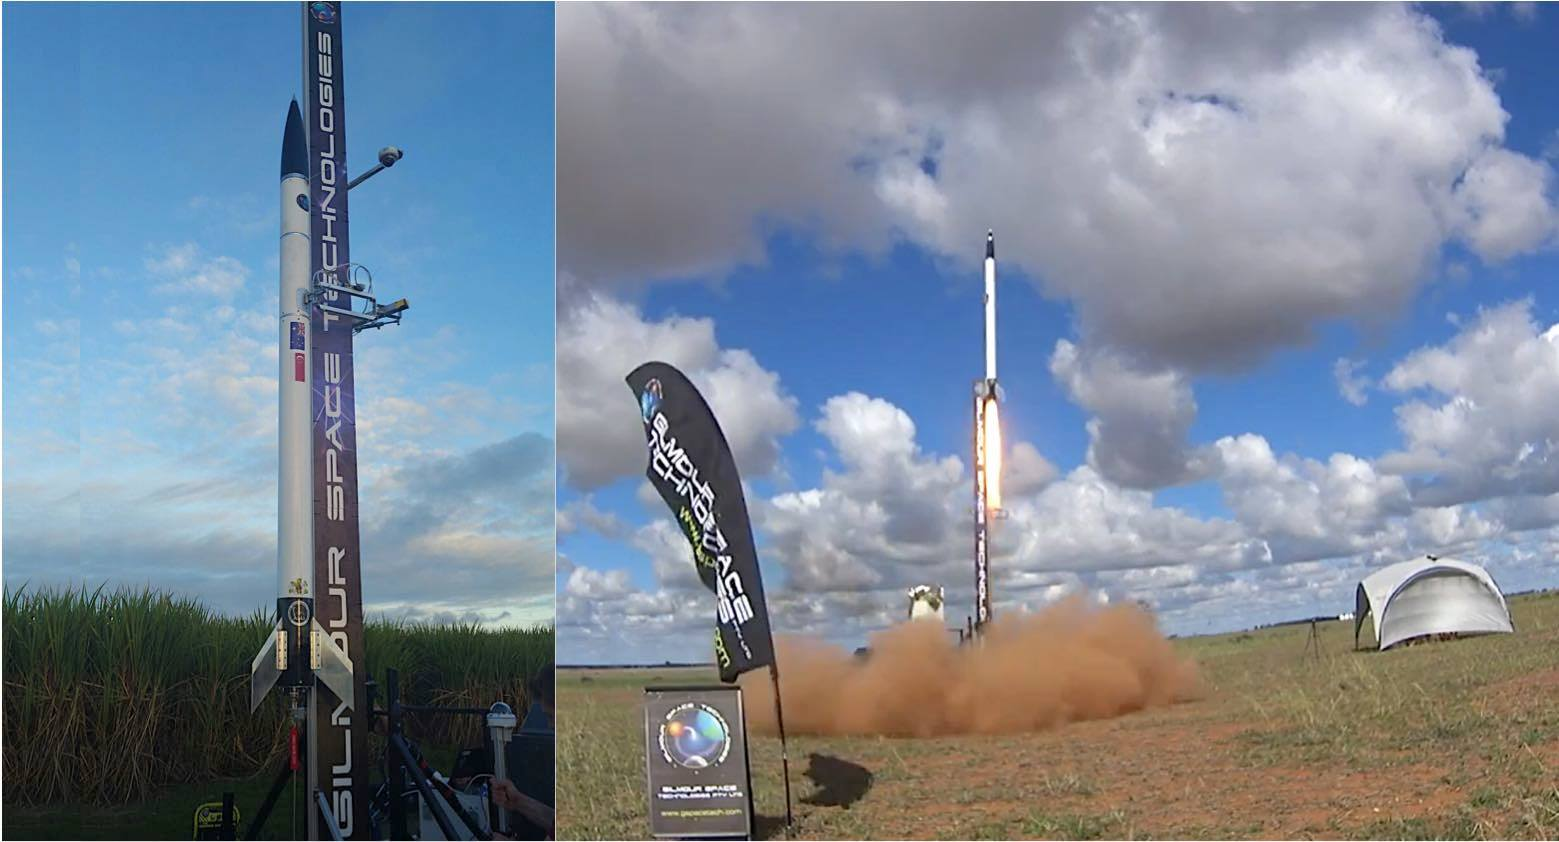 Gilmour Space Technologies first test launch of 3D printed rocket fuel in June 2016. Photo via Gilmour Space Technologies.